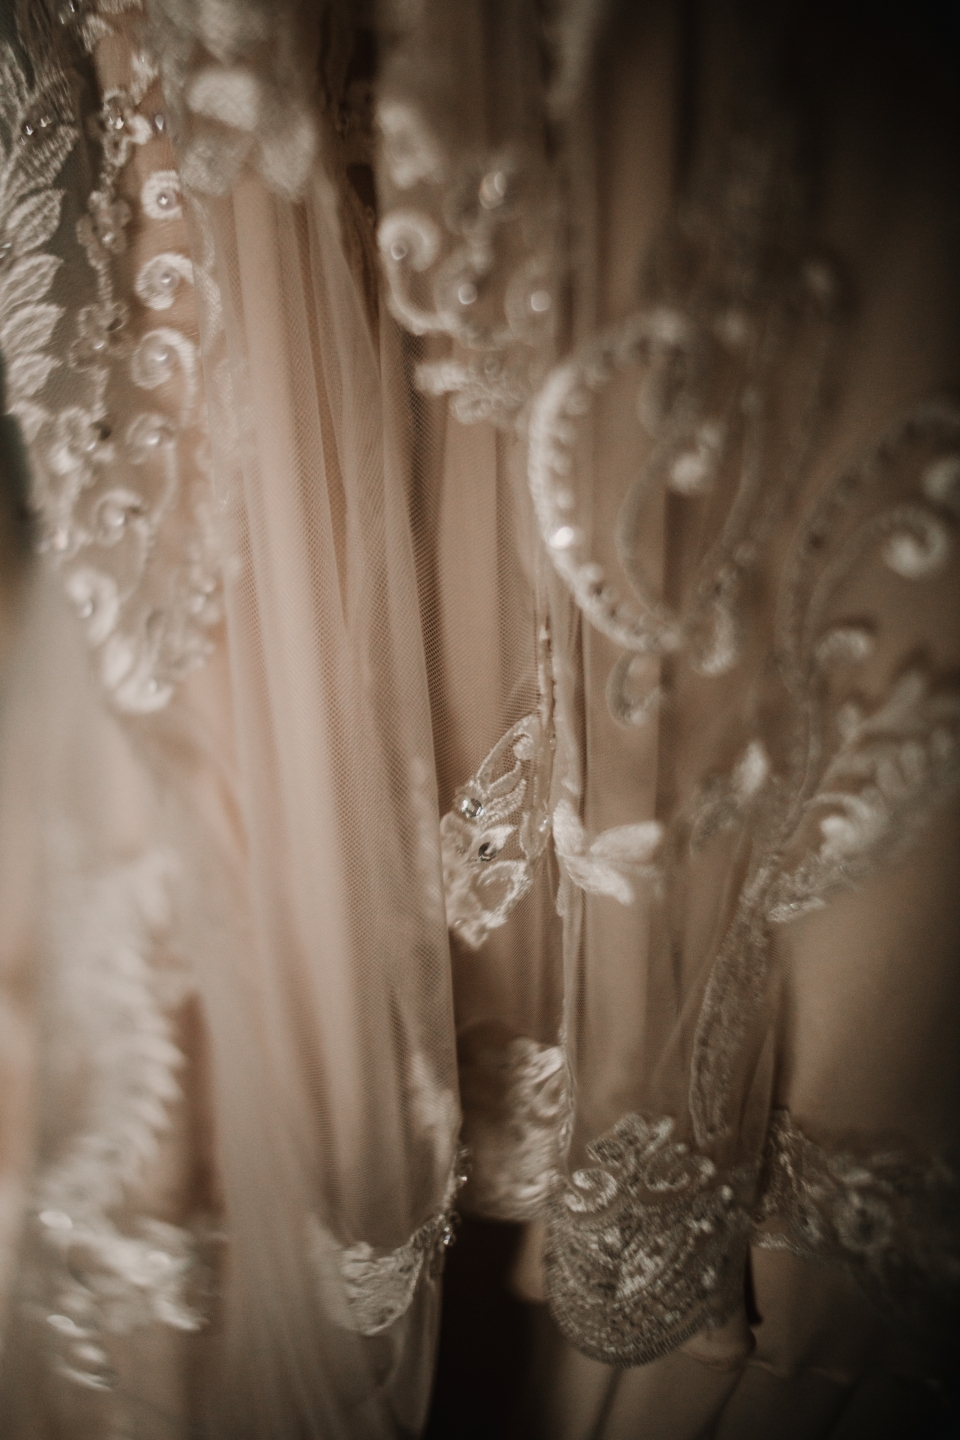 close up detail of the textures in brides wedding dress